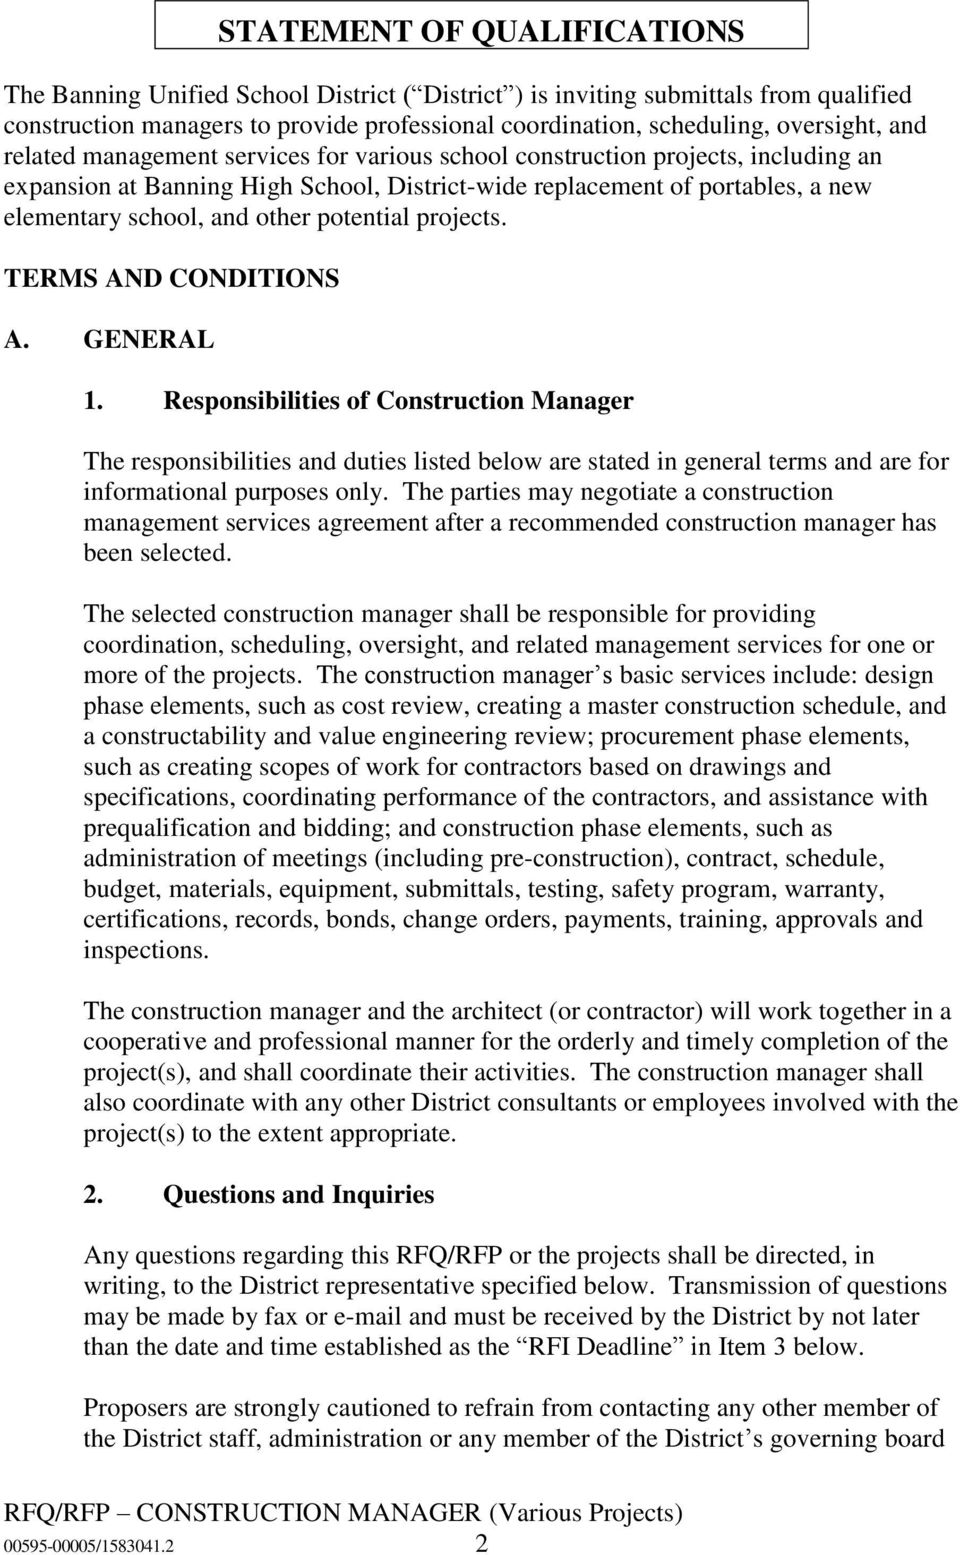 potential projects. TERMS AND CONDITIONS A. GENERAL 1.